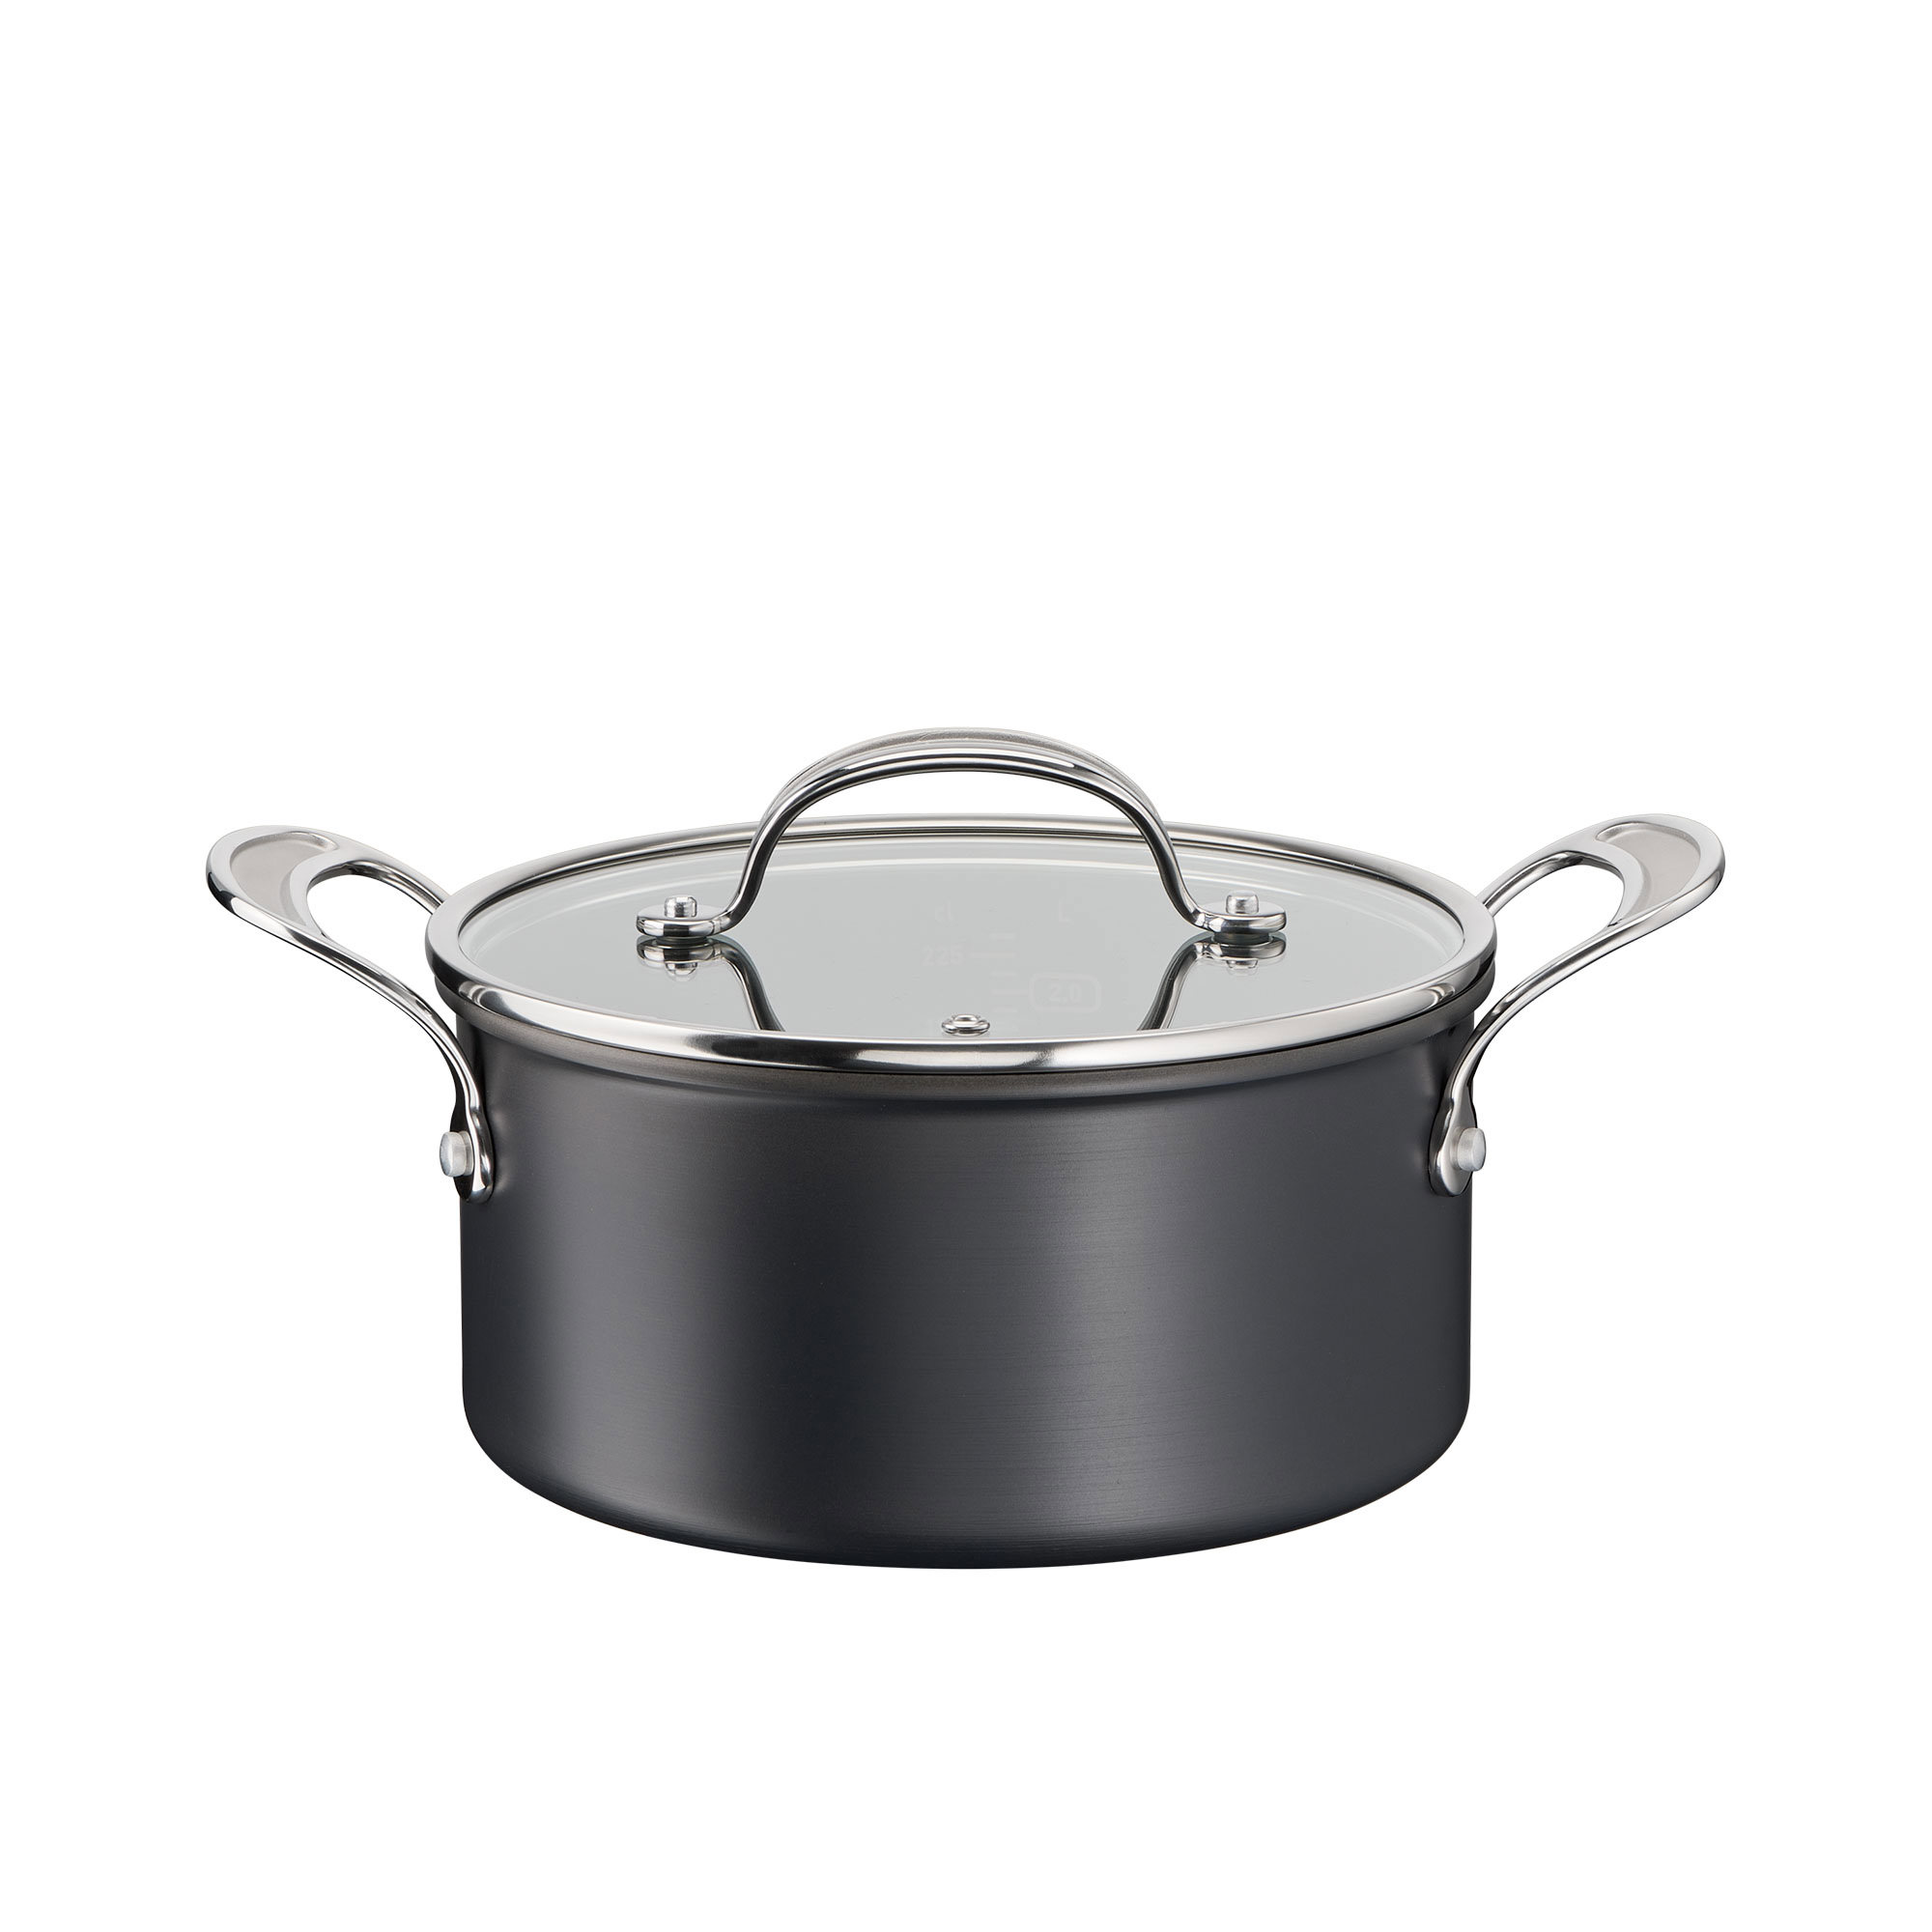 Jamie Oliver Cook's Classic Hard Anodised Induction Stewpot 24cm - 5L